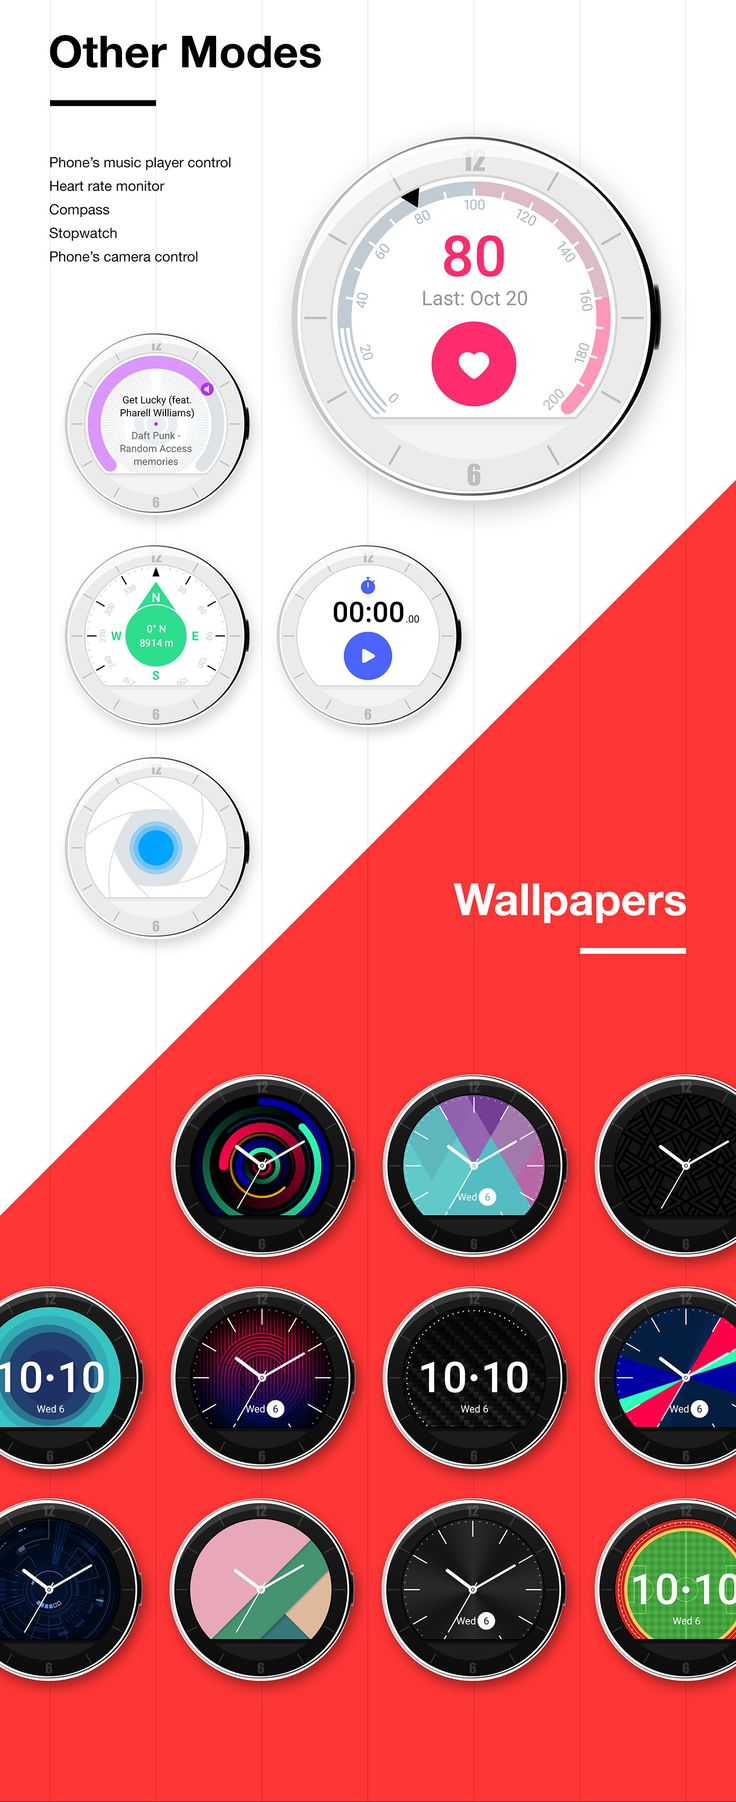 The Top 5 High End SmartWatches Compared Alcatel Watch UX design concept on Behance